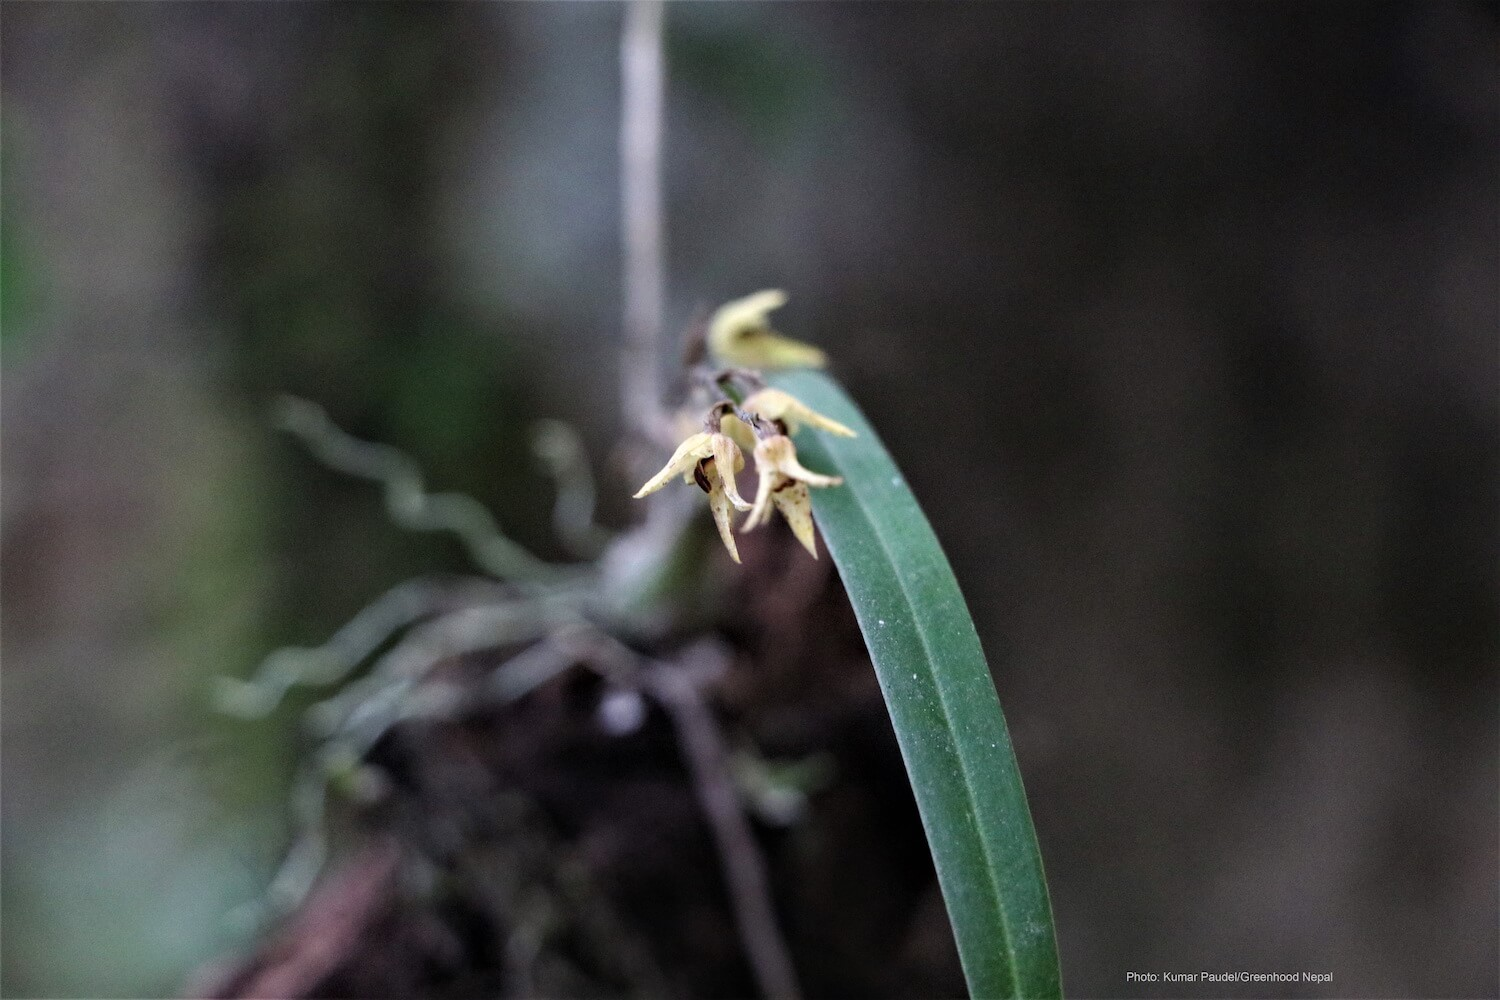 Saving nature by protecting orchids